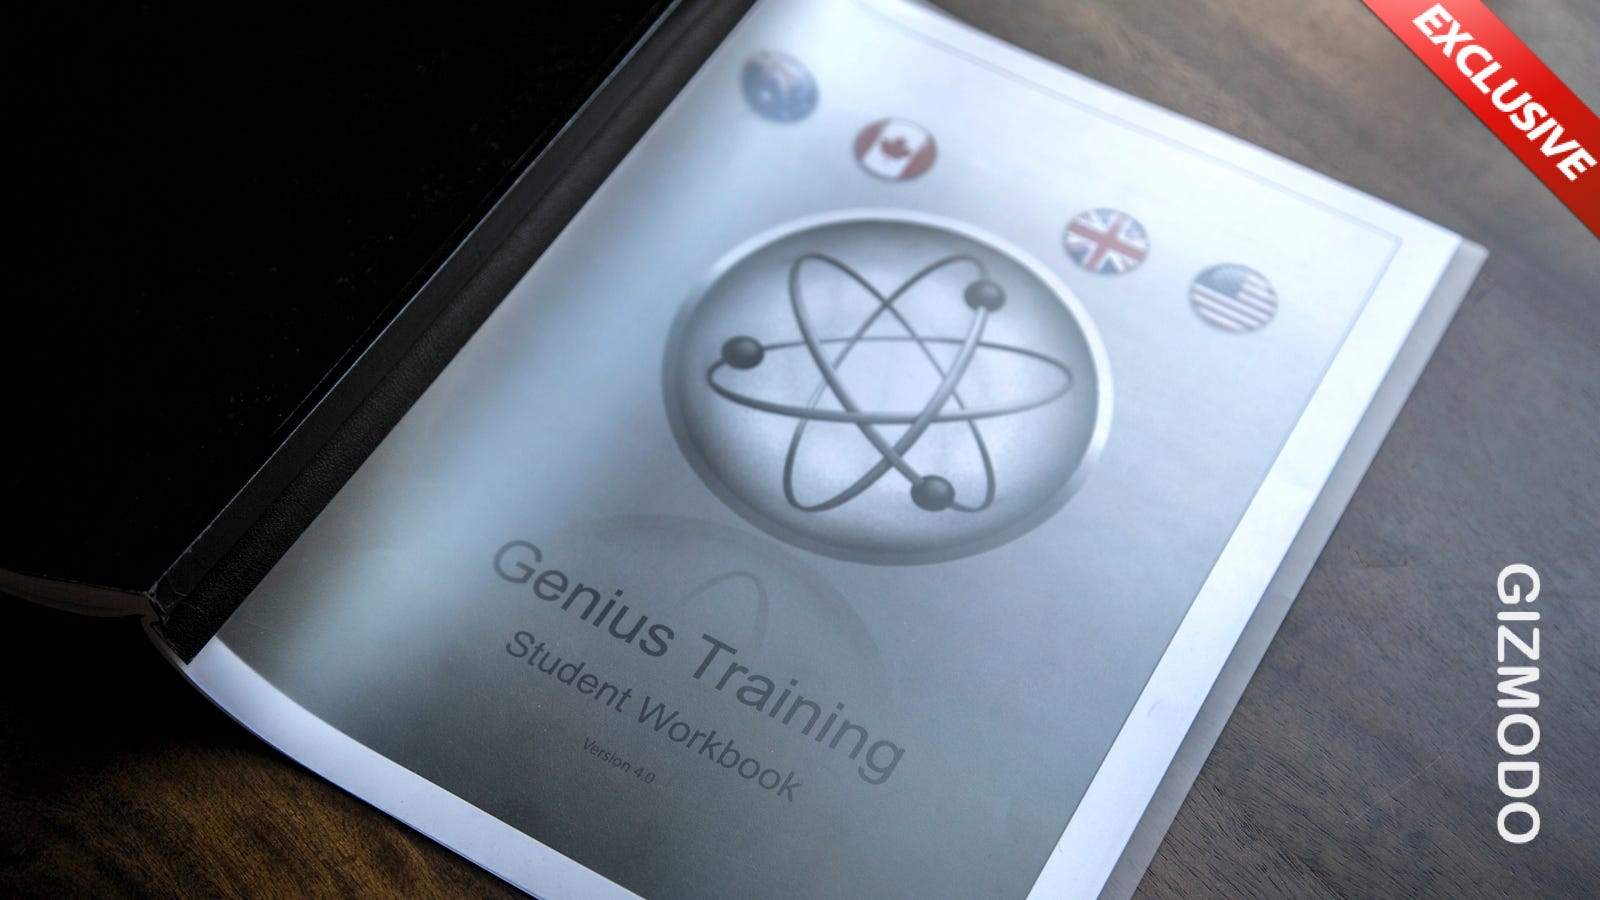 How to be a genius this is apples secret employee training manual falaconquin